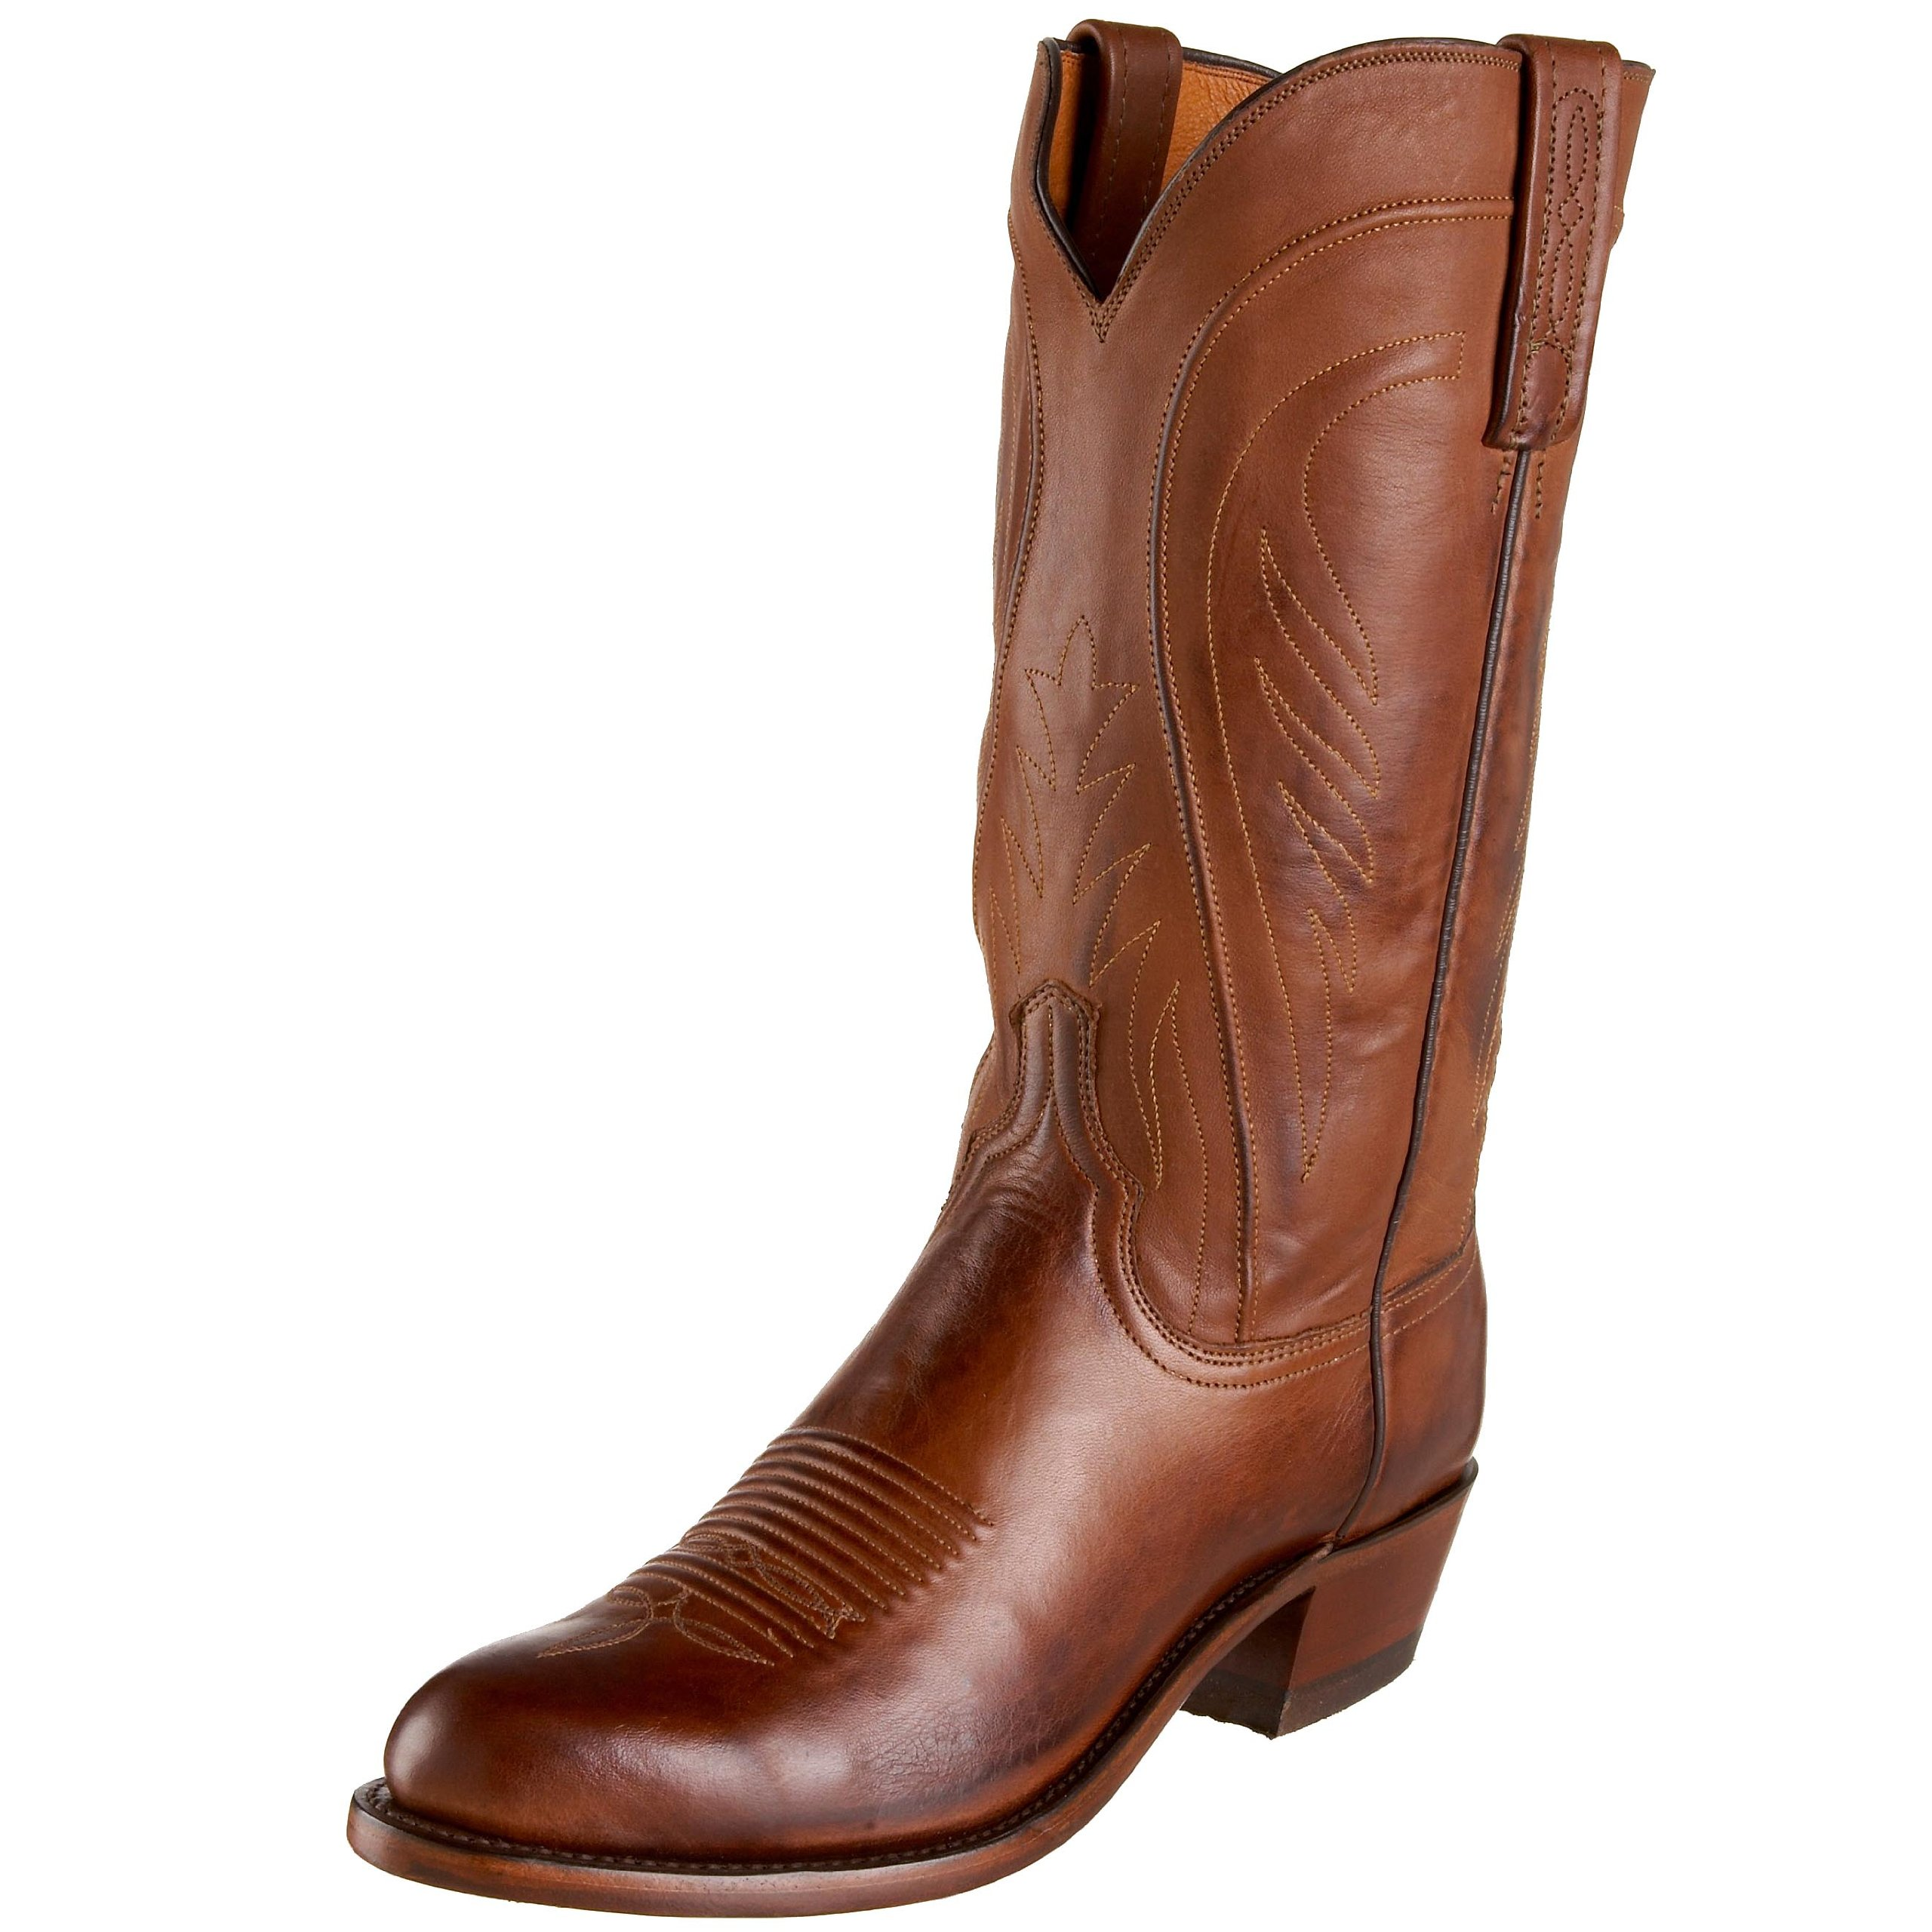 Lucchese Men's 1883 Bart Western Boots, Tan Burnish - 13 D(M) US